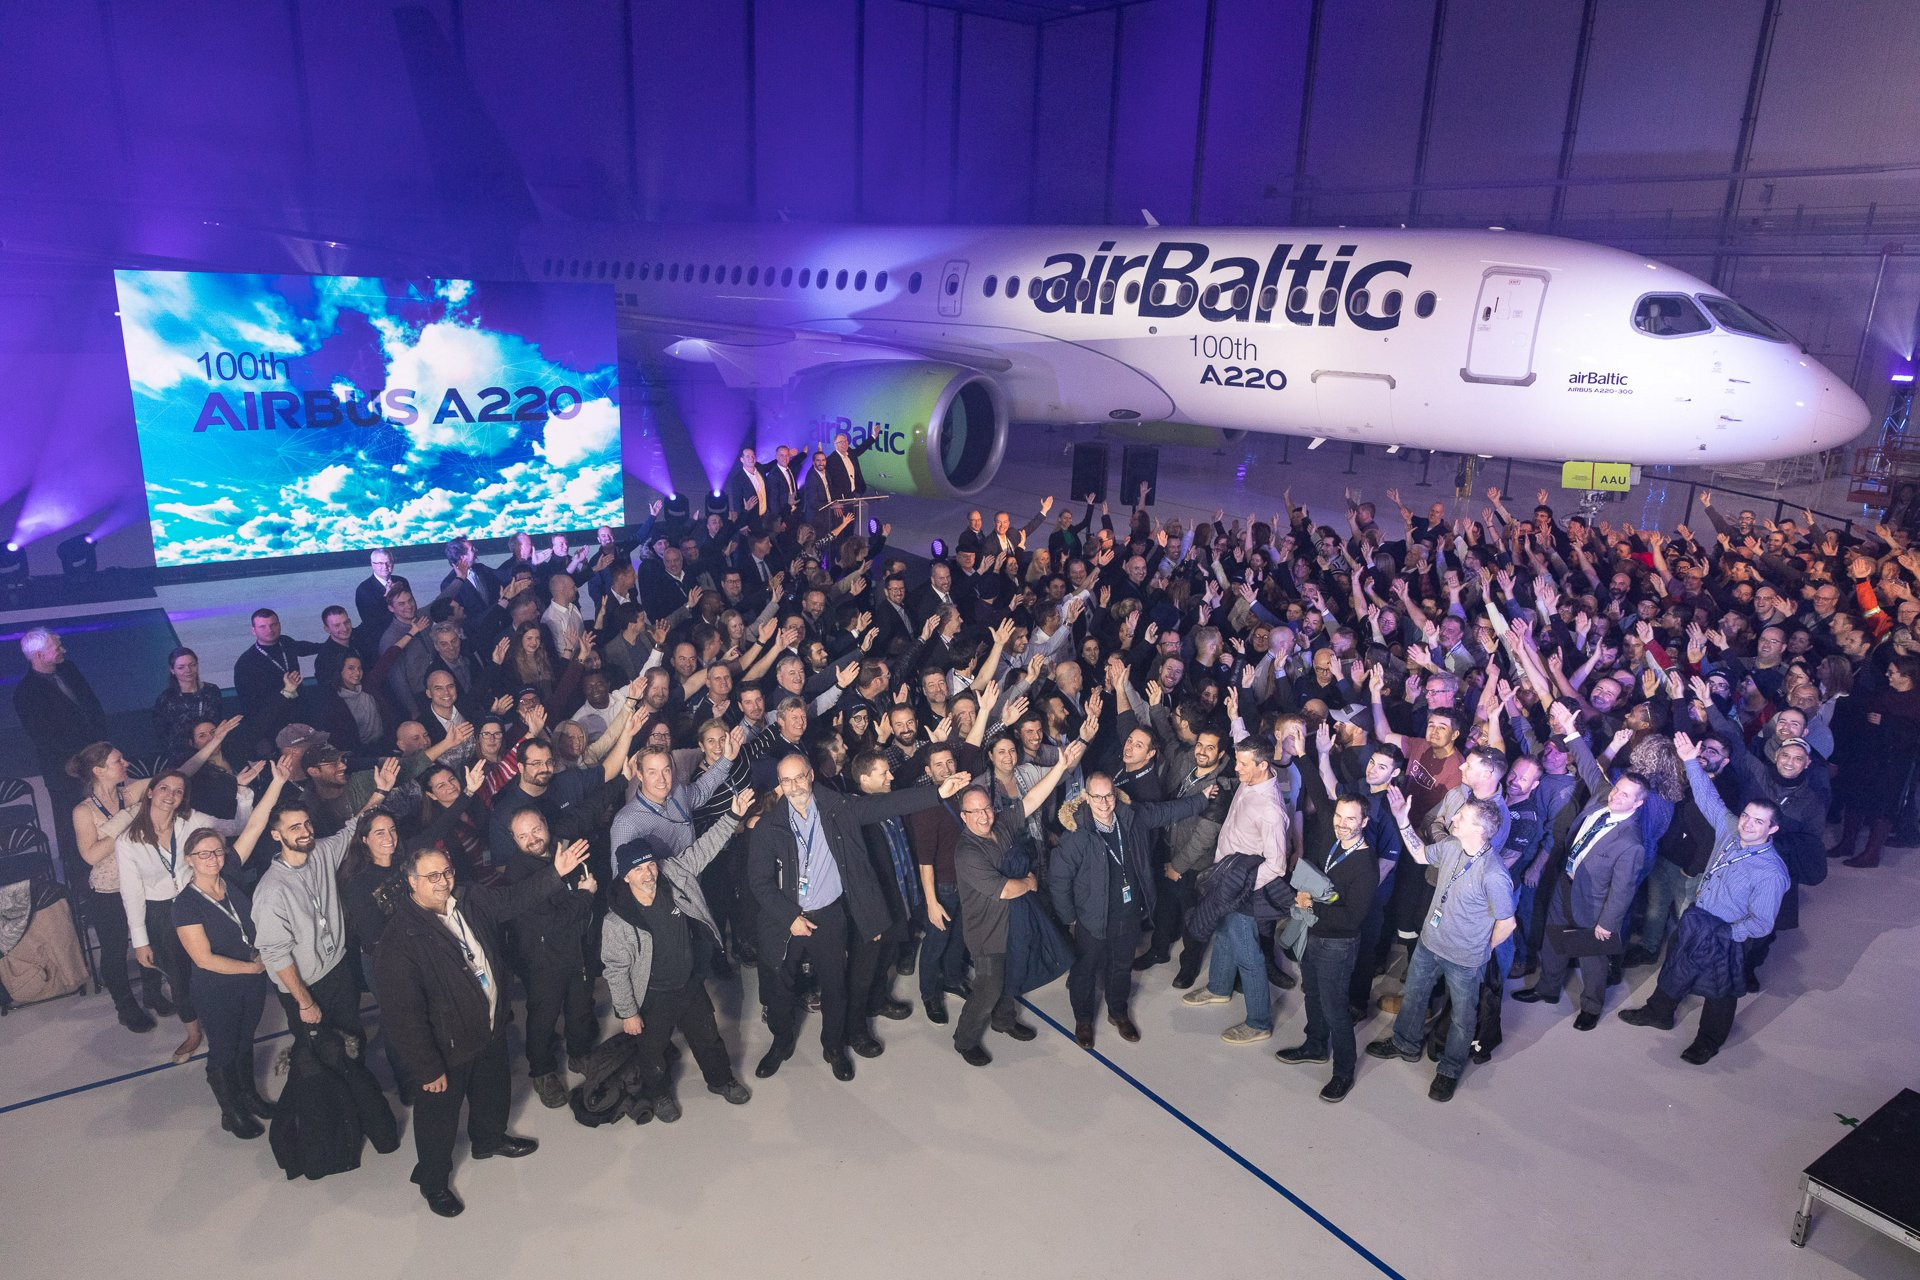 AG真人计划 celebrated the 100th A220 produced for a customer during a ceremony at the aircraft programme鈥檚 headquarters in Mirabel, Canada, with an A220-300 version for Latvia-based airBaltic serving as the milestone jetliner